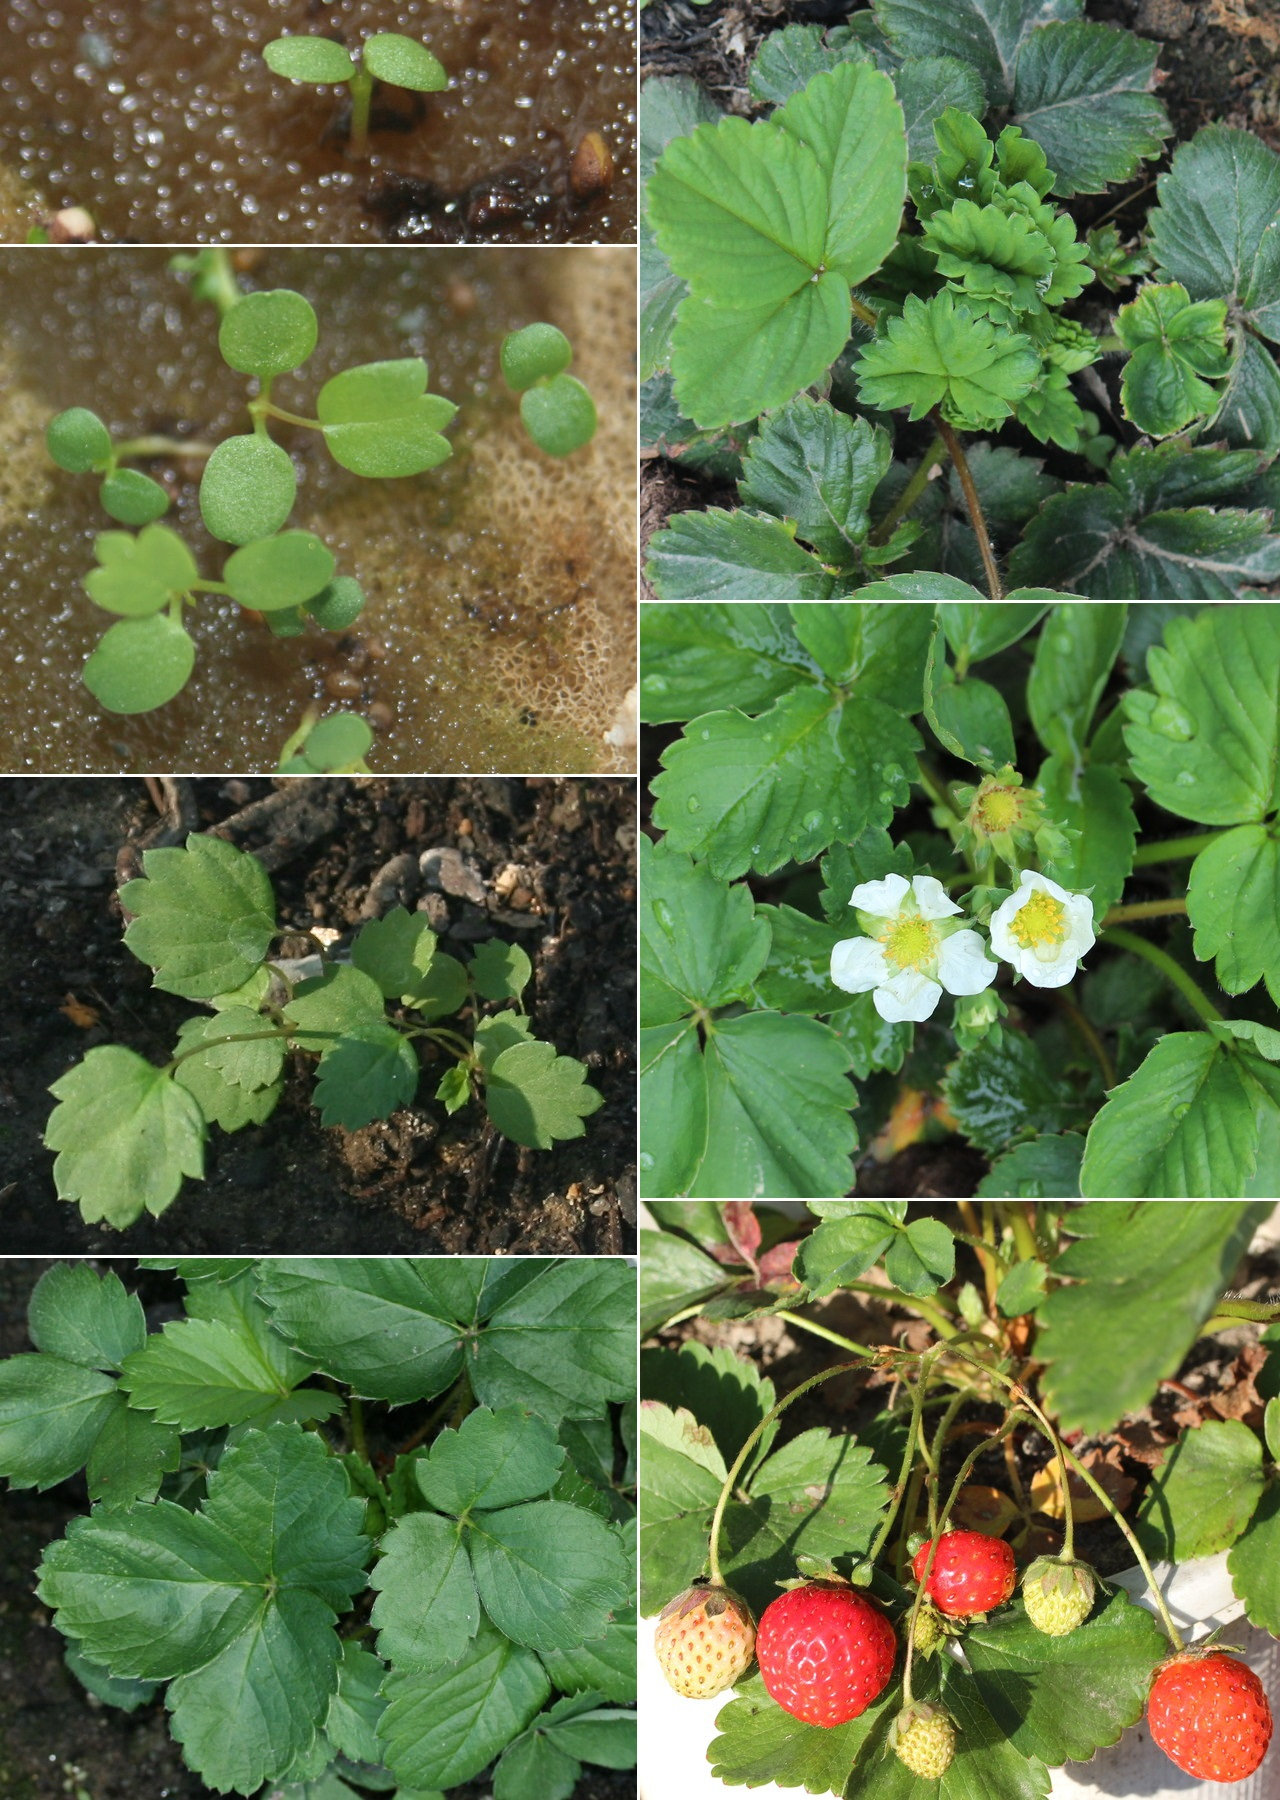 File:Life_cycle_of_Fragaria_%C3%97_ananassa on Plant Life Cycle Stages